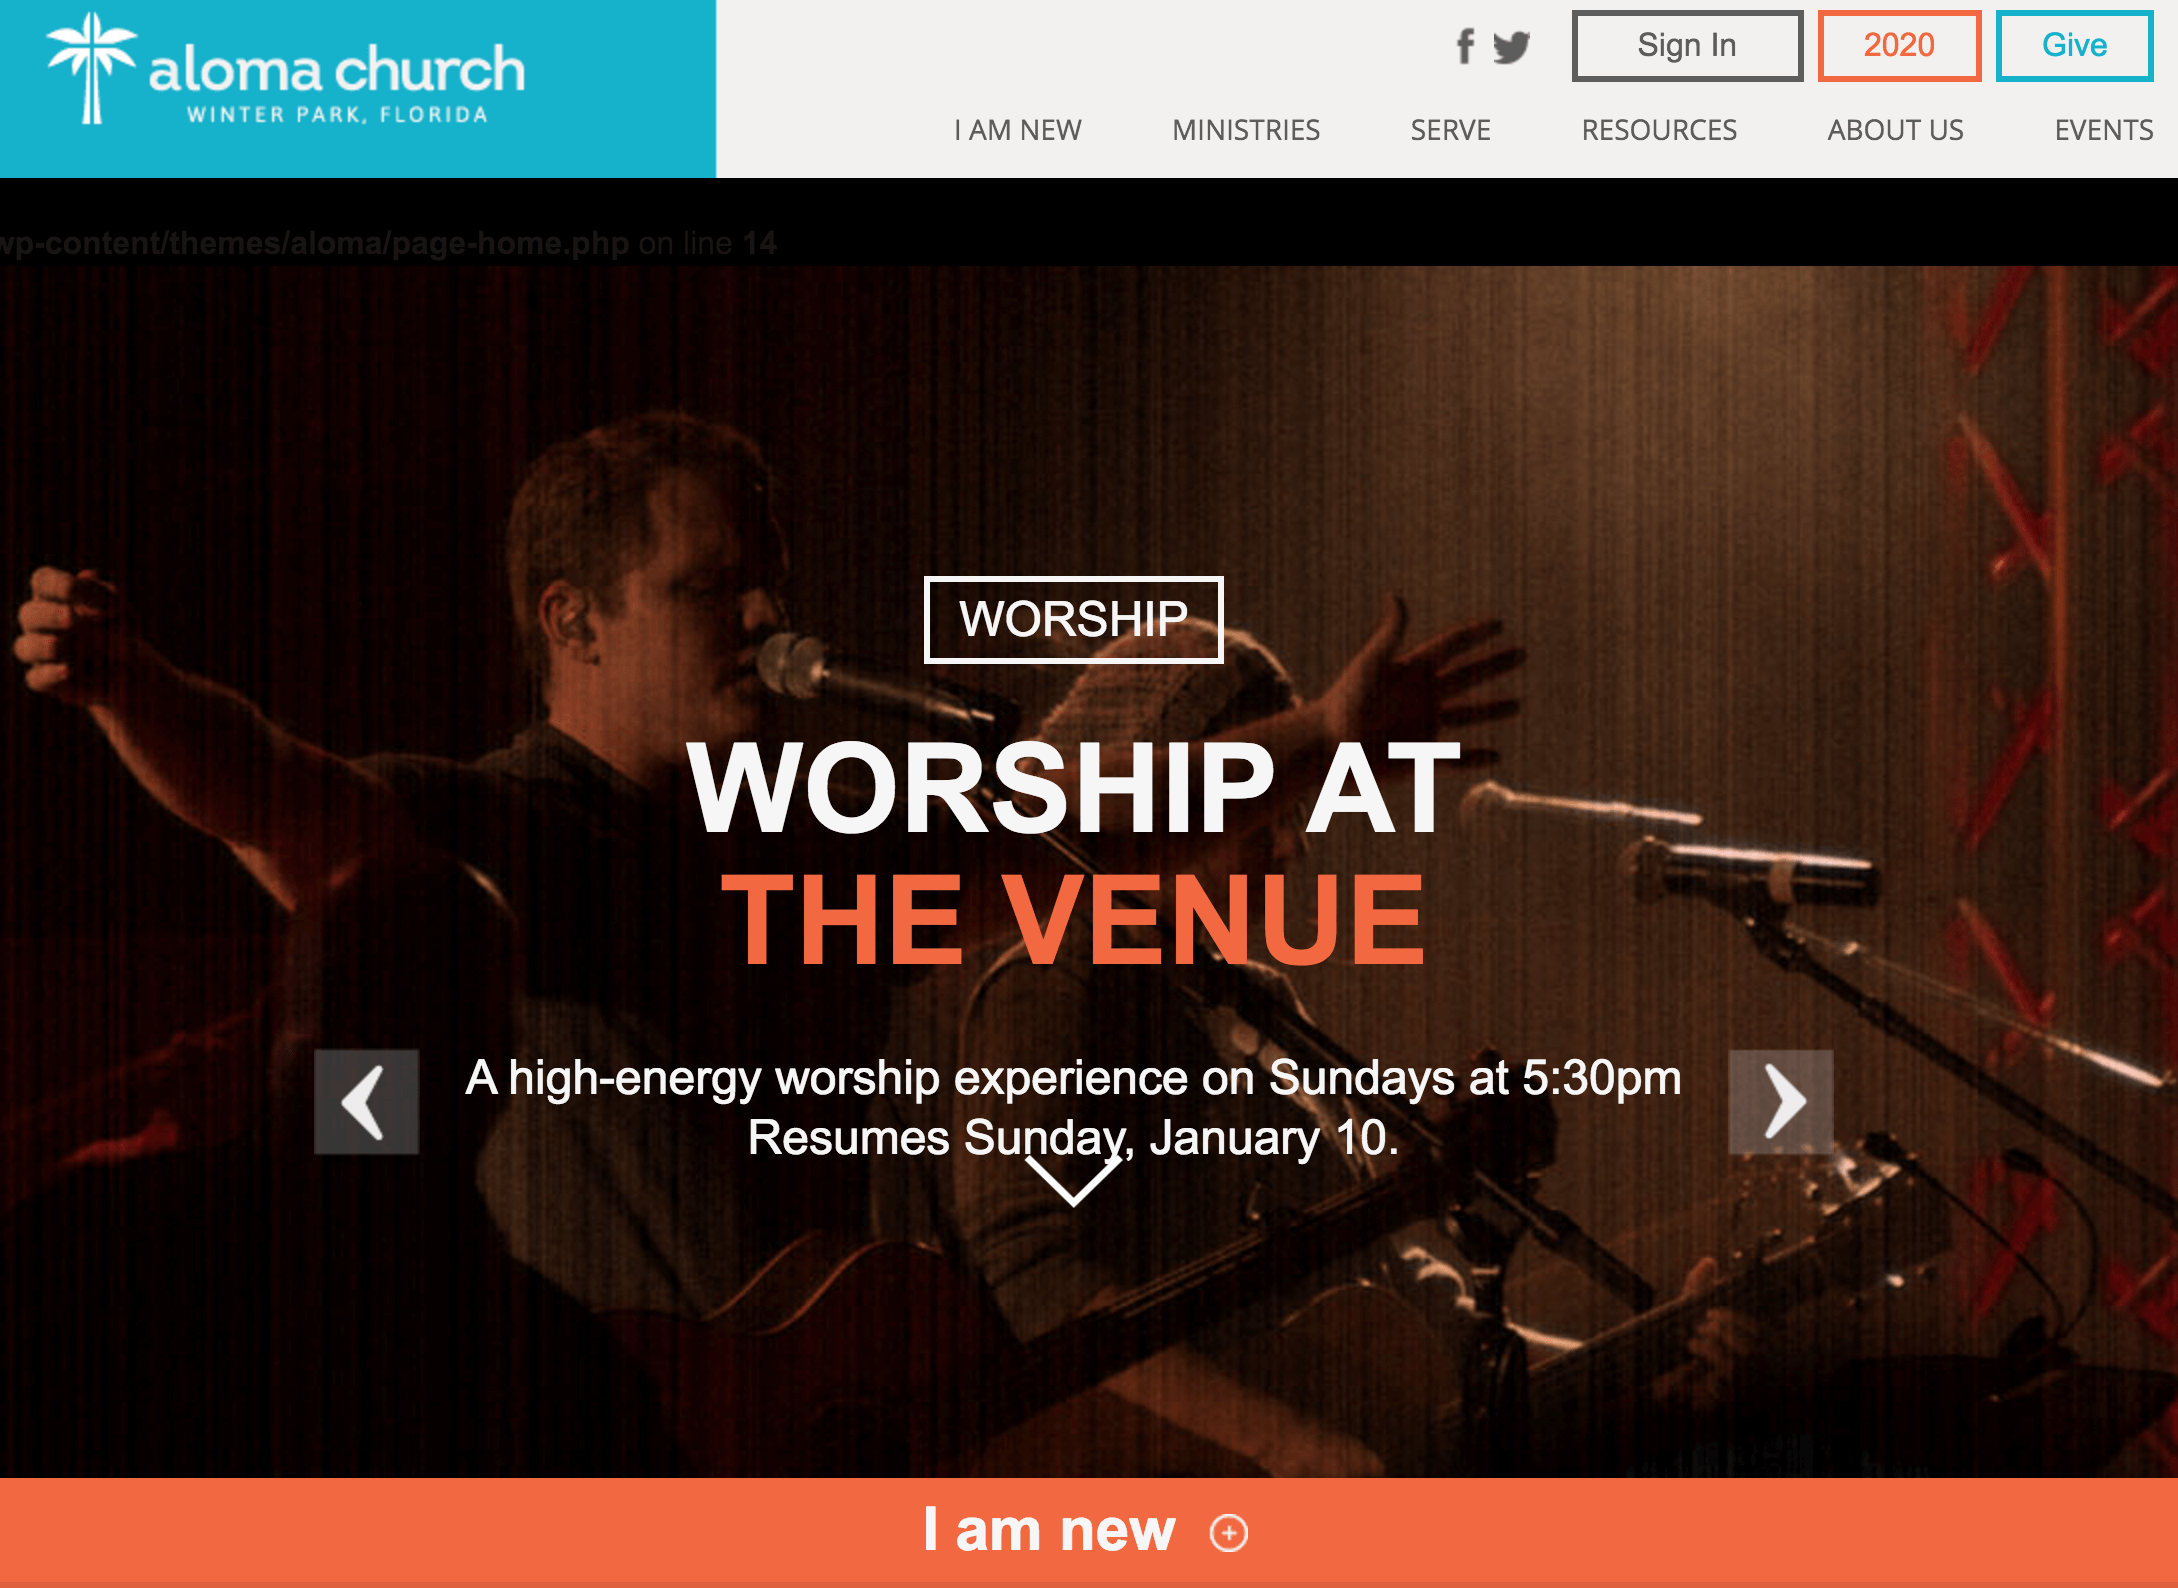 aloma church homepage - Church Website Design Ideas